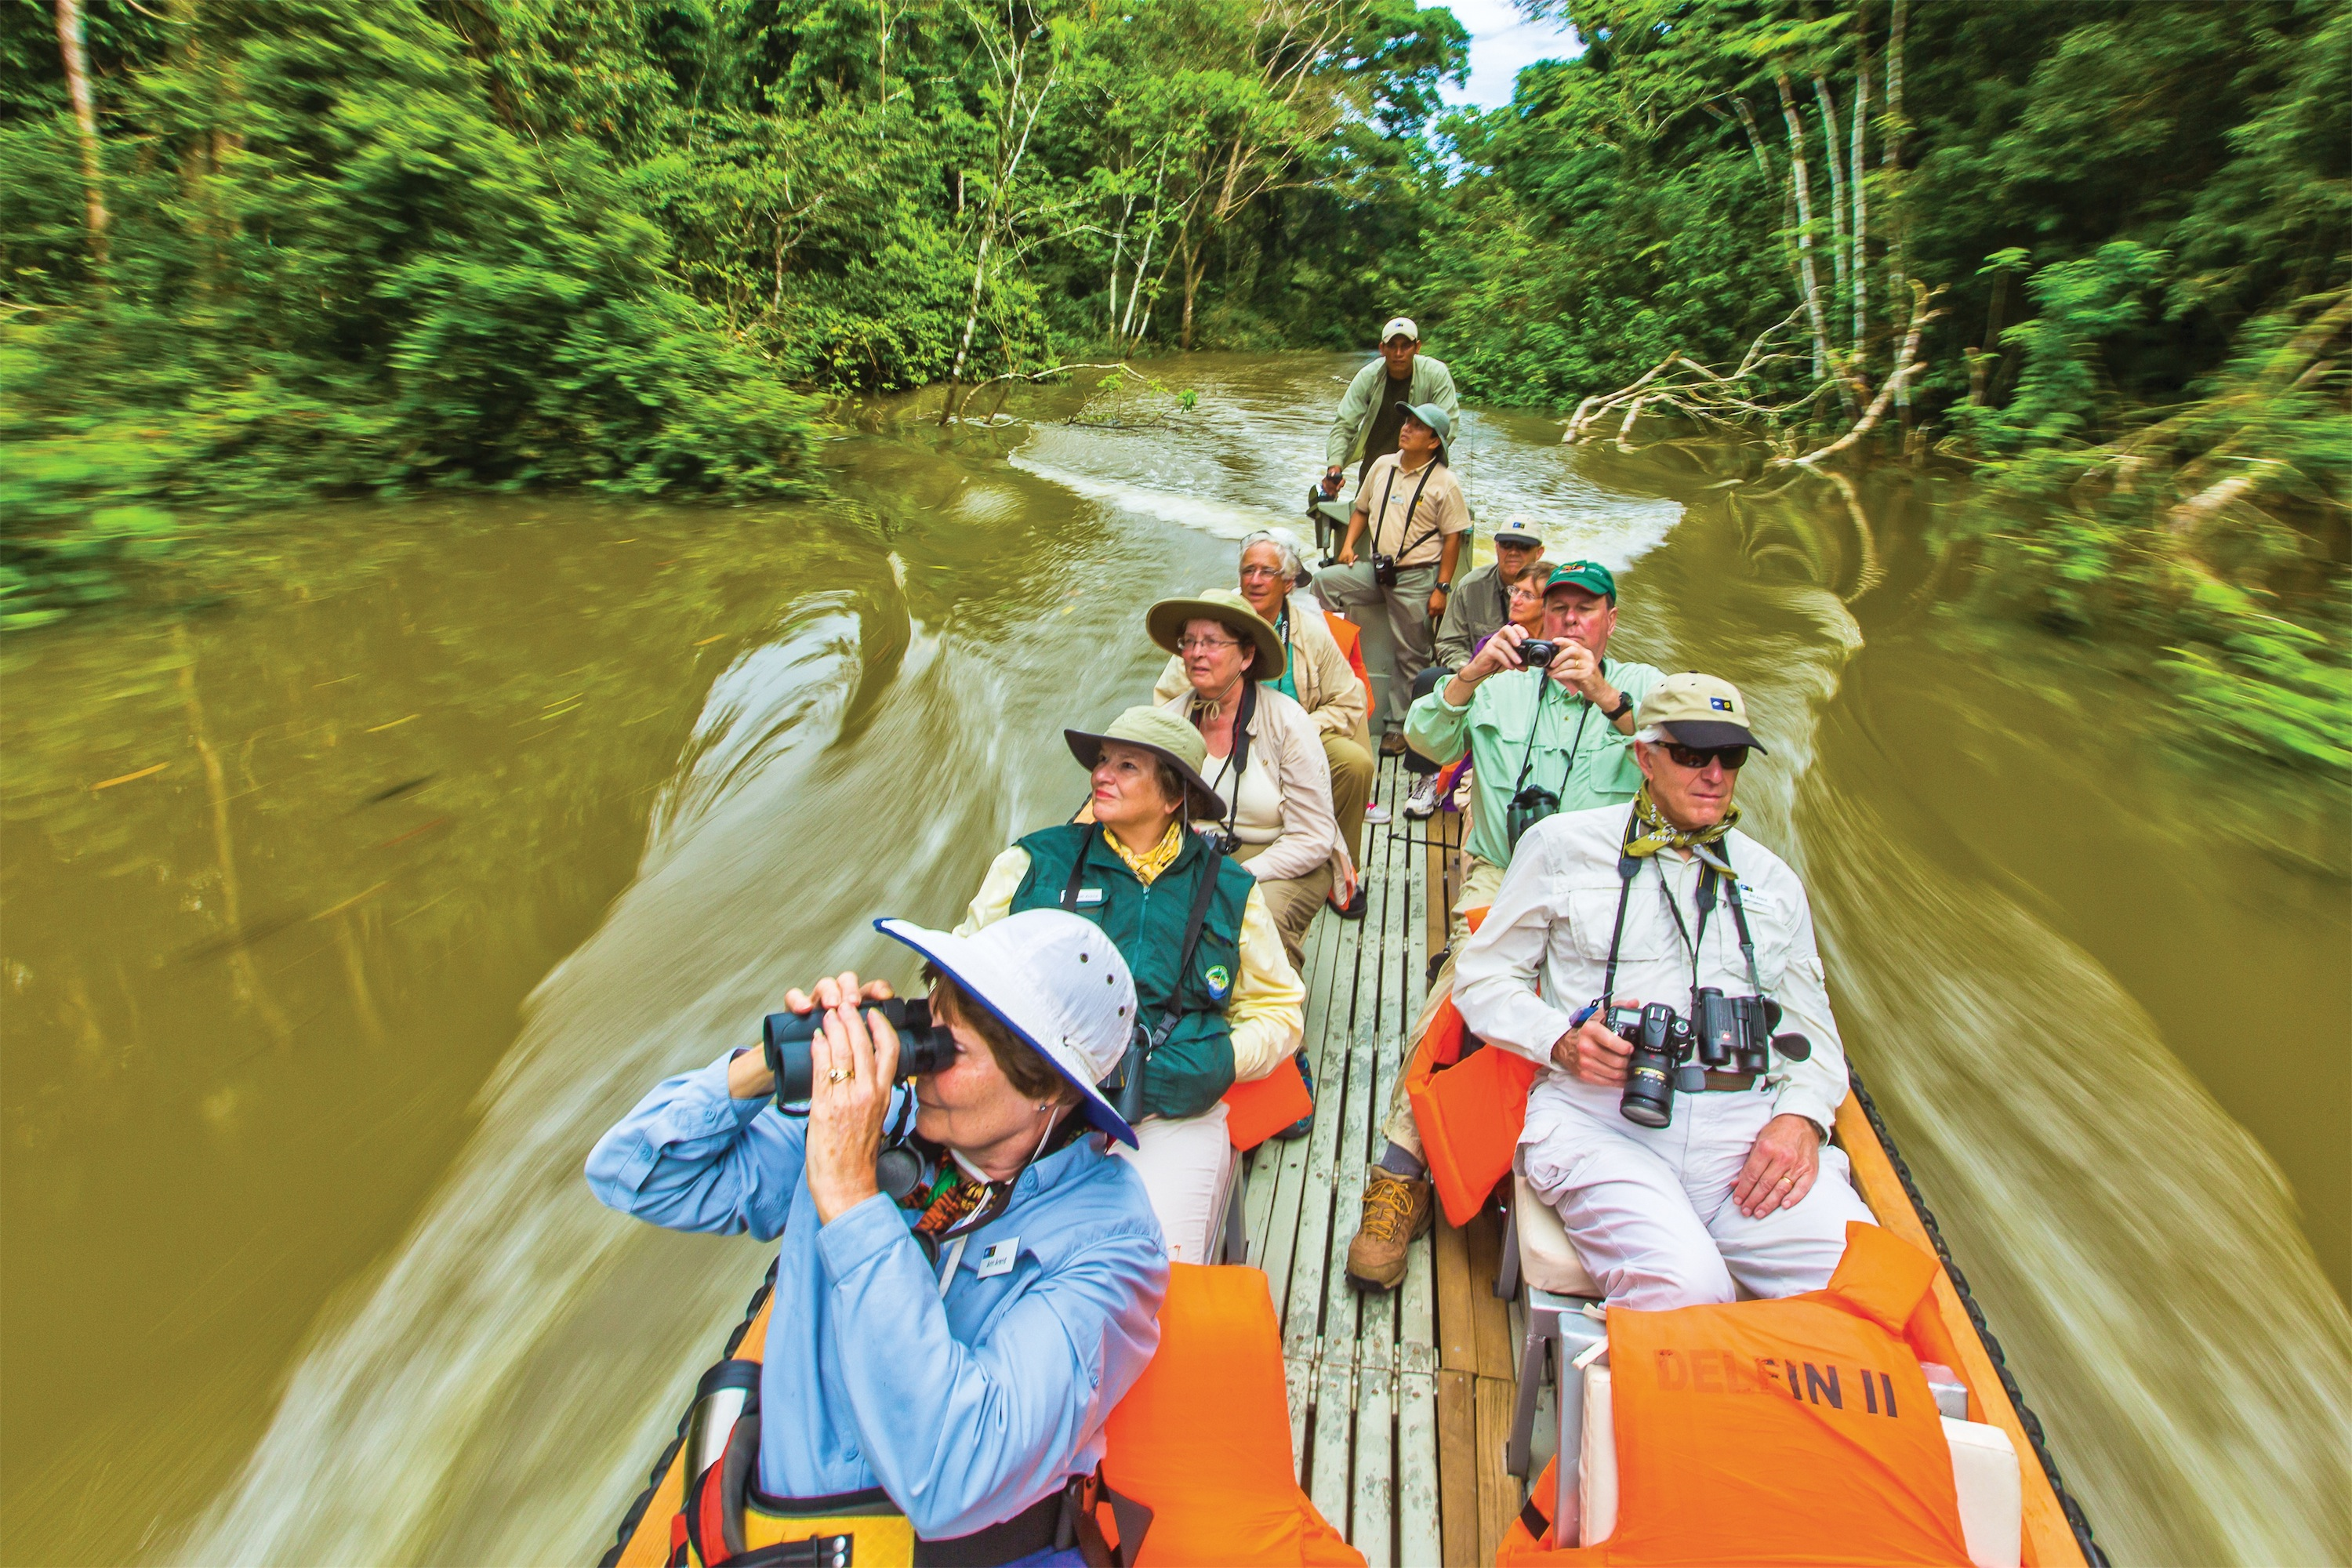 Lindblad Expeditions Delfin II Exterior Exploring by Skiff Ecotourism on the Amazon River.jpg